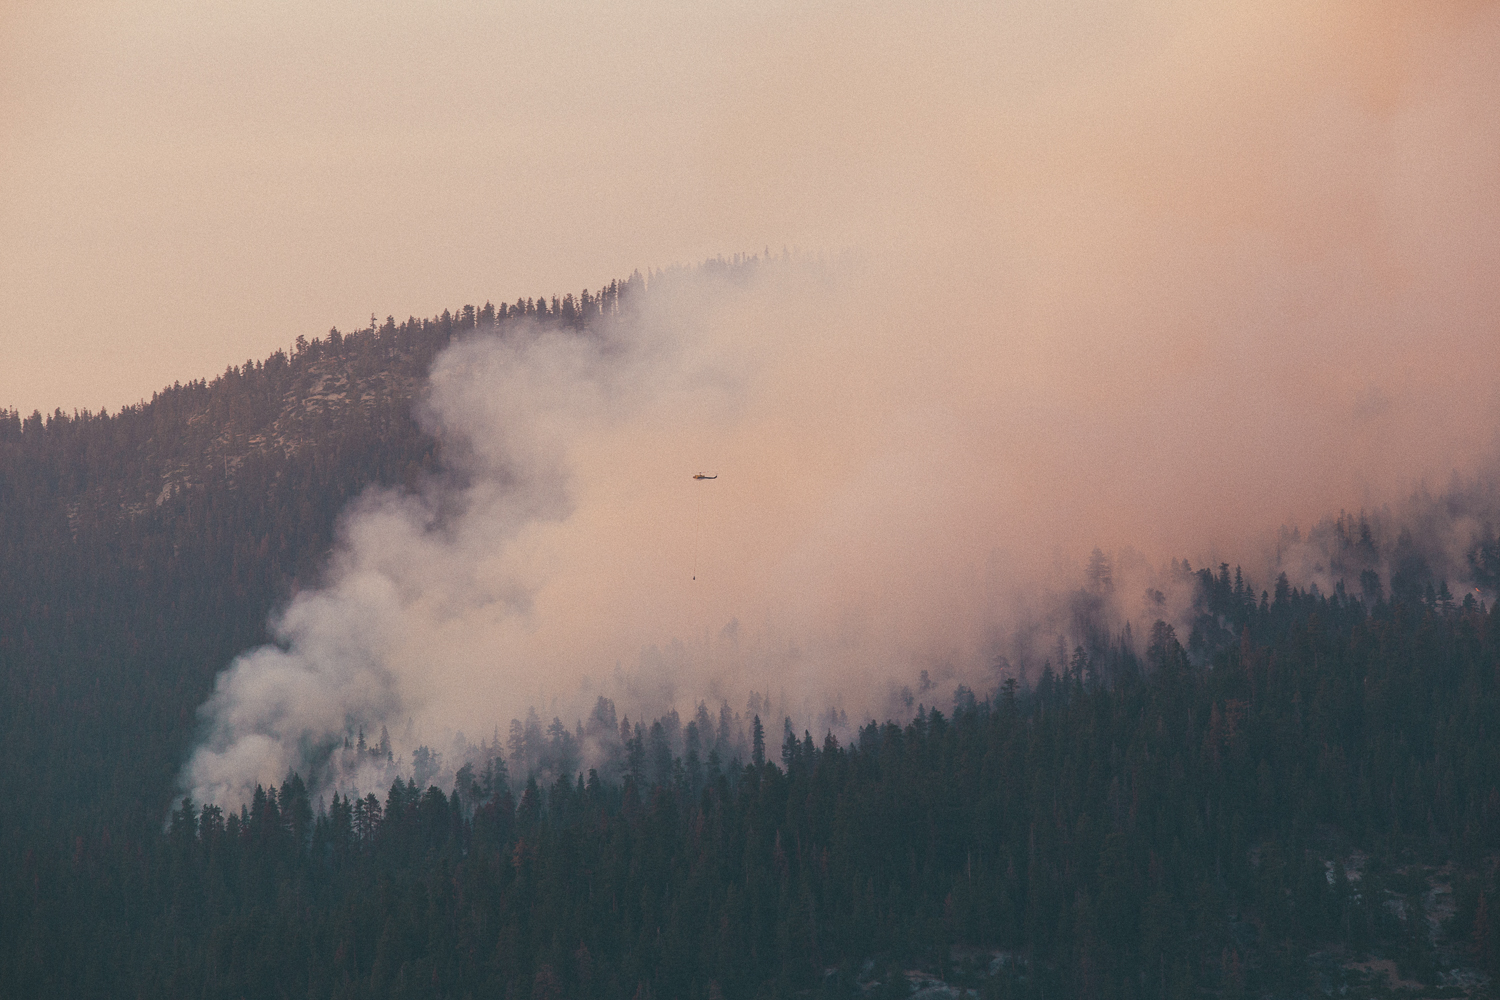 By the time I made it up the hill,the fire had already spread hundreds of acres. Firefighting crews were already on it, dropping flame retardant from air tankers and huge buckets of water from their helicopters. Somebody hadn't been listening to ole Smokey The Bear.